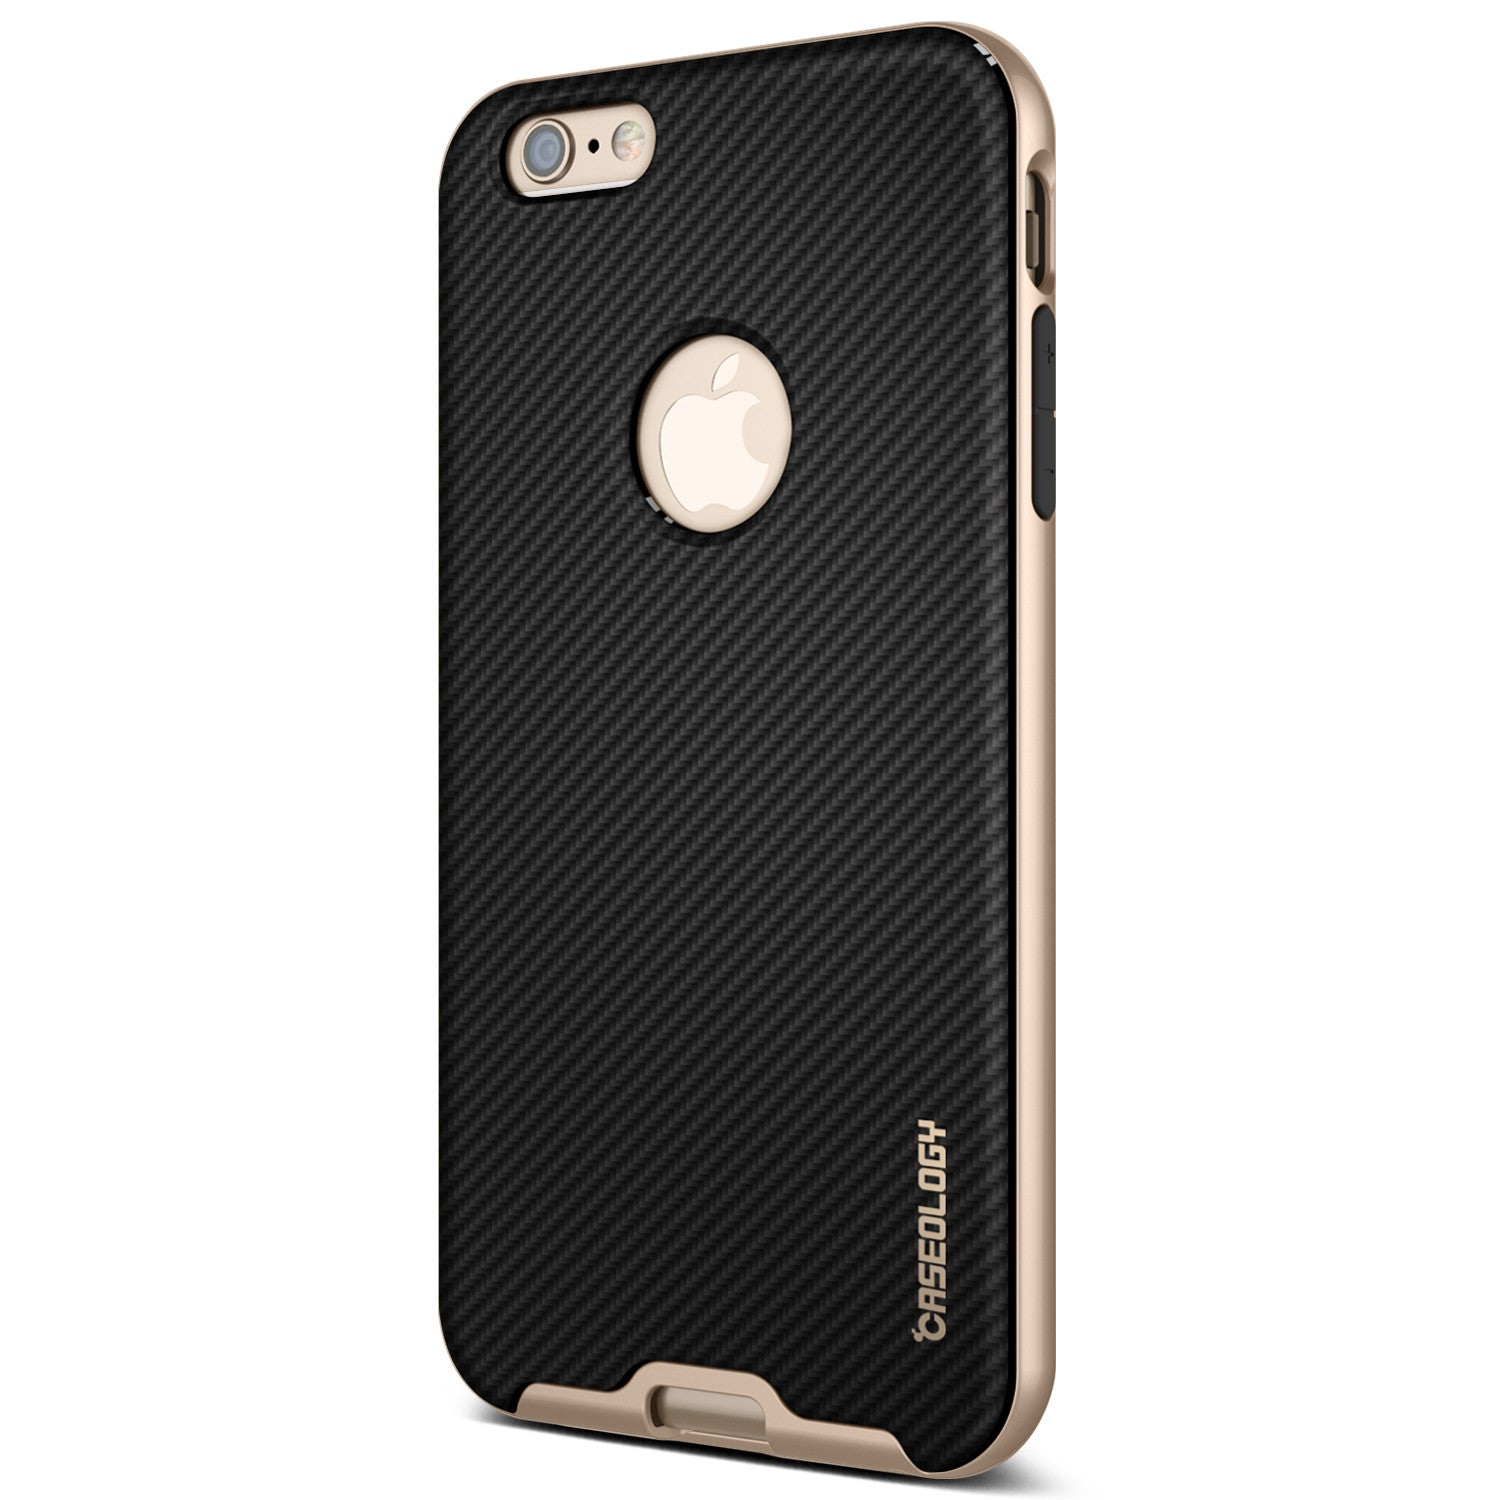 iPhone 6 Case Bumper Frame